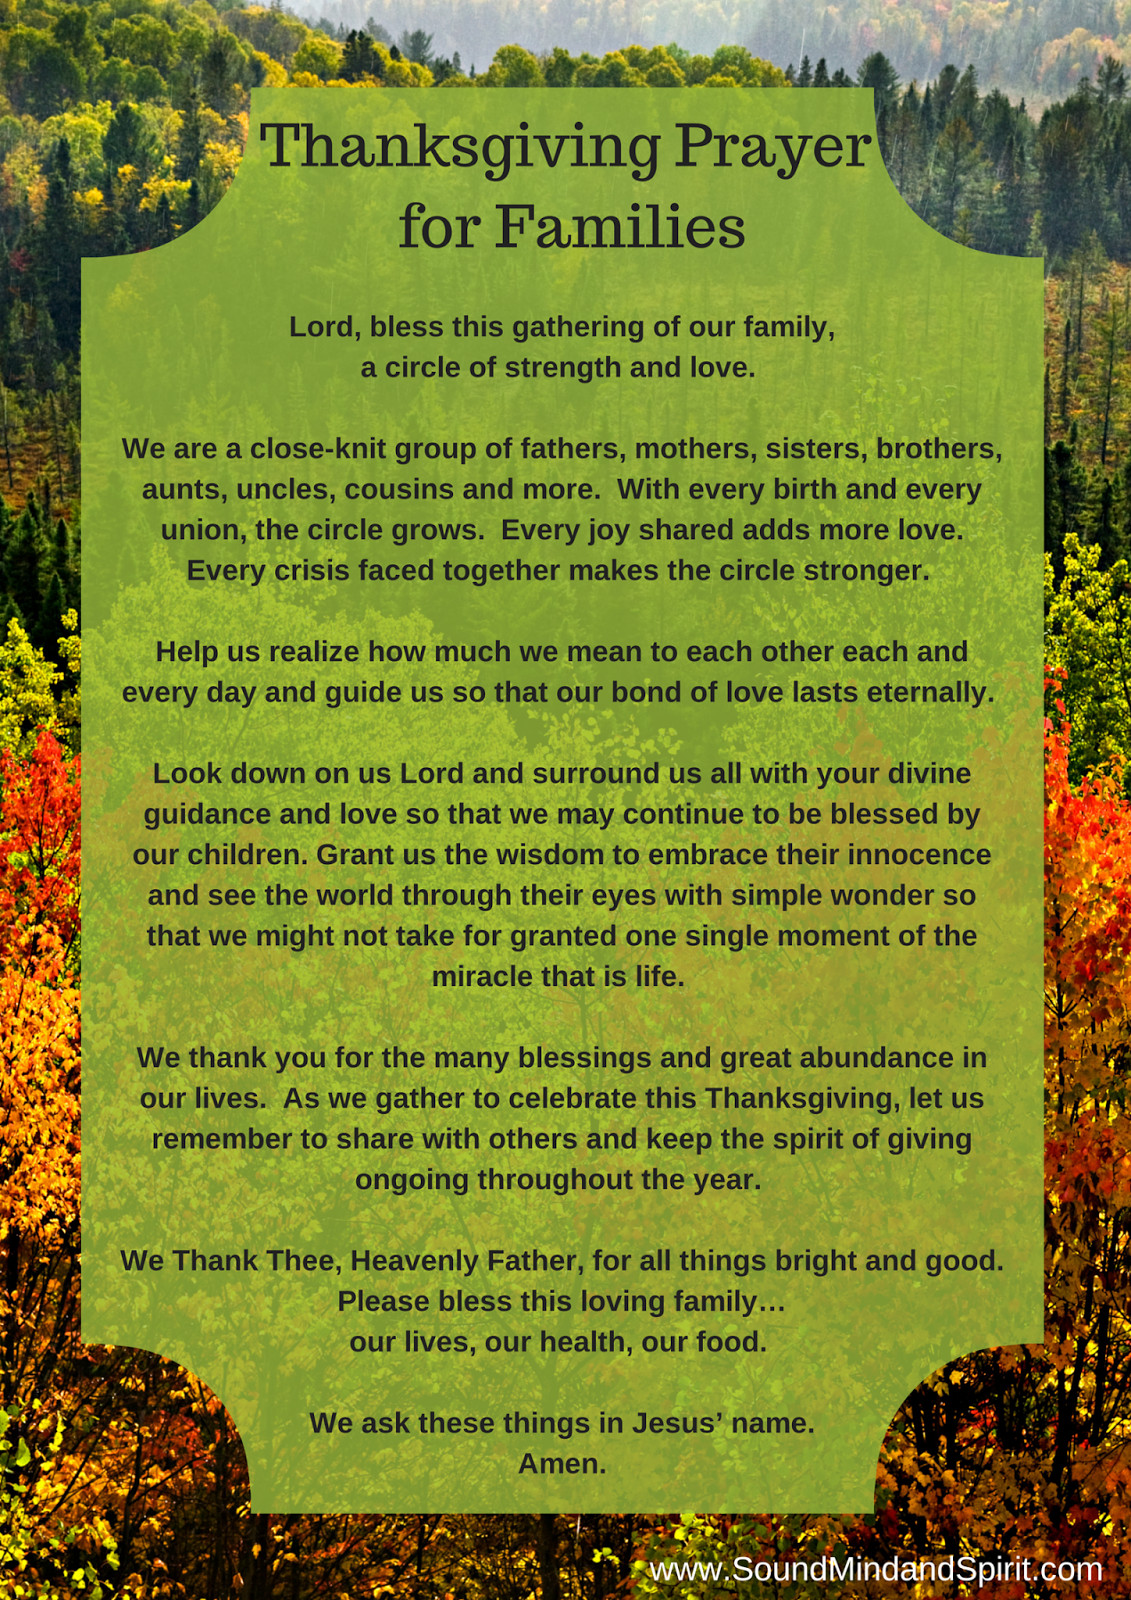 Prayer For Thanksgiving Dinner  Sound Mind and Spirit Blessings of Thanksgiving for